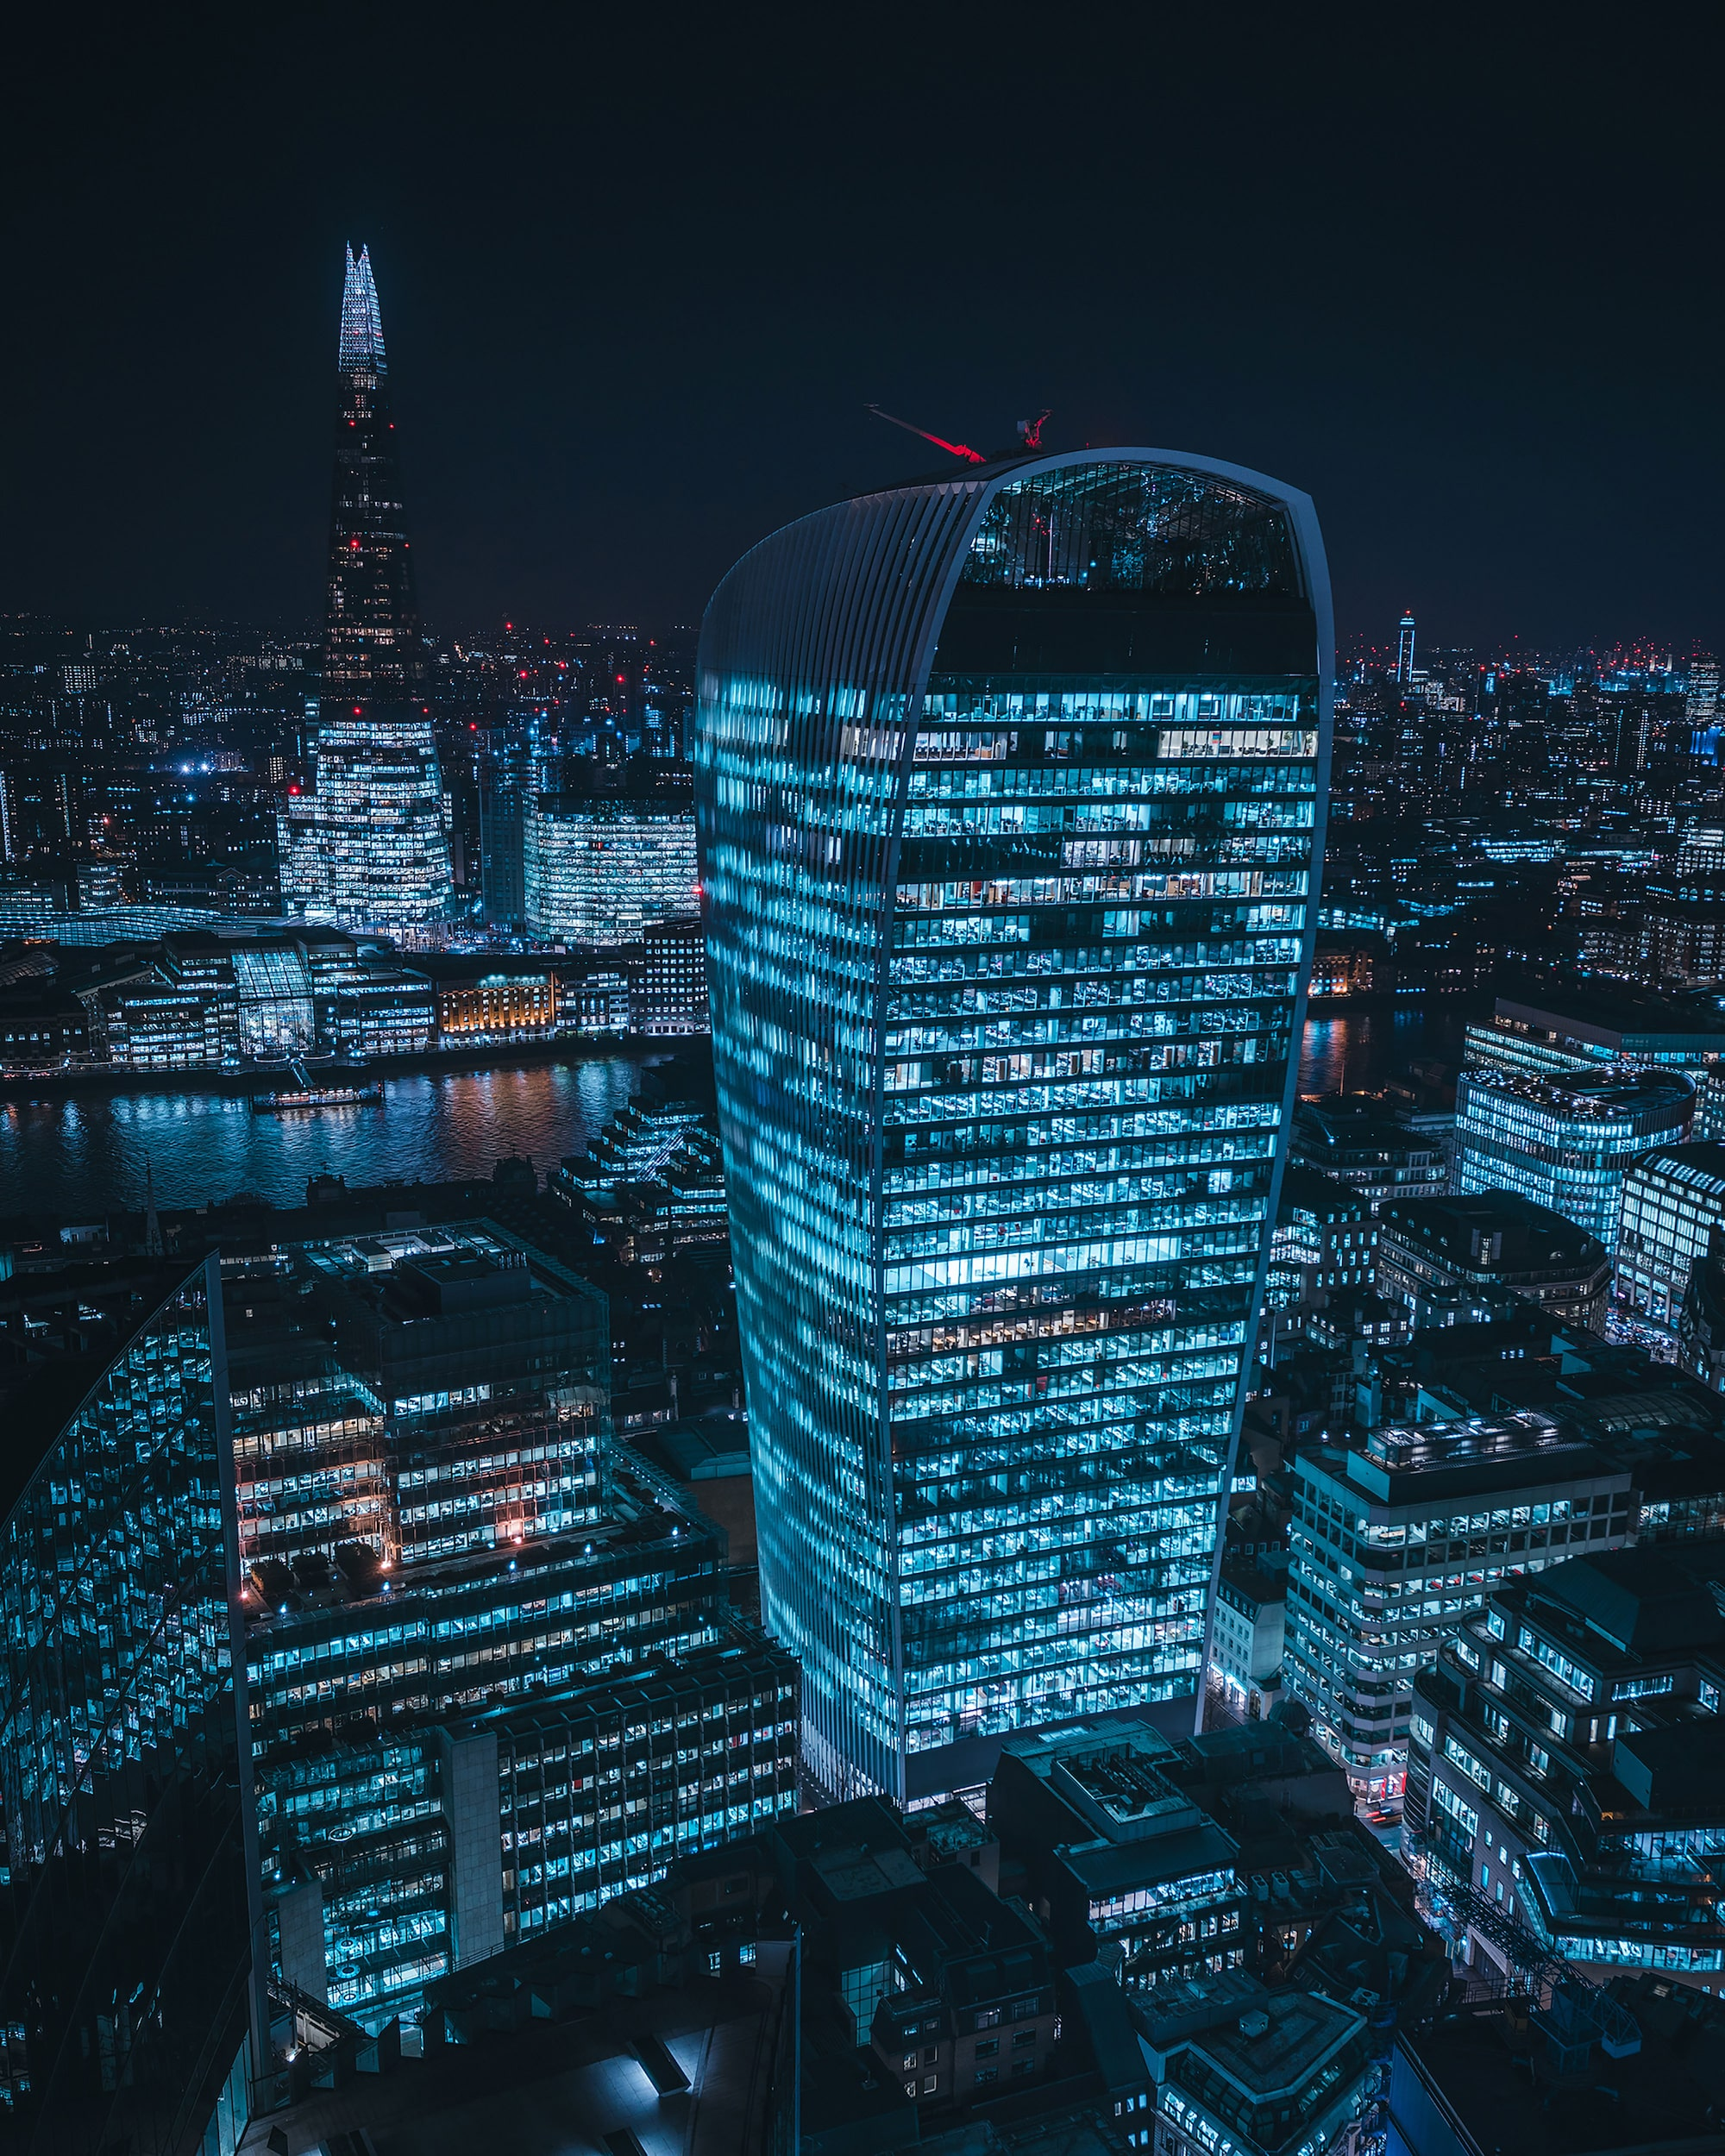 London nightscape of skyscrapers